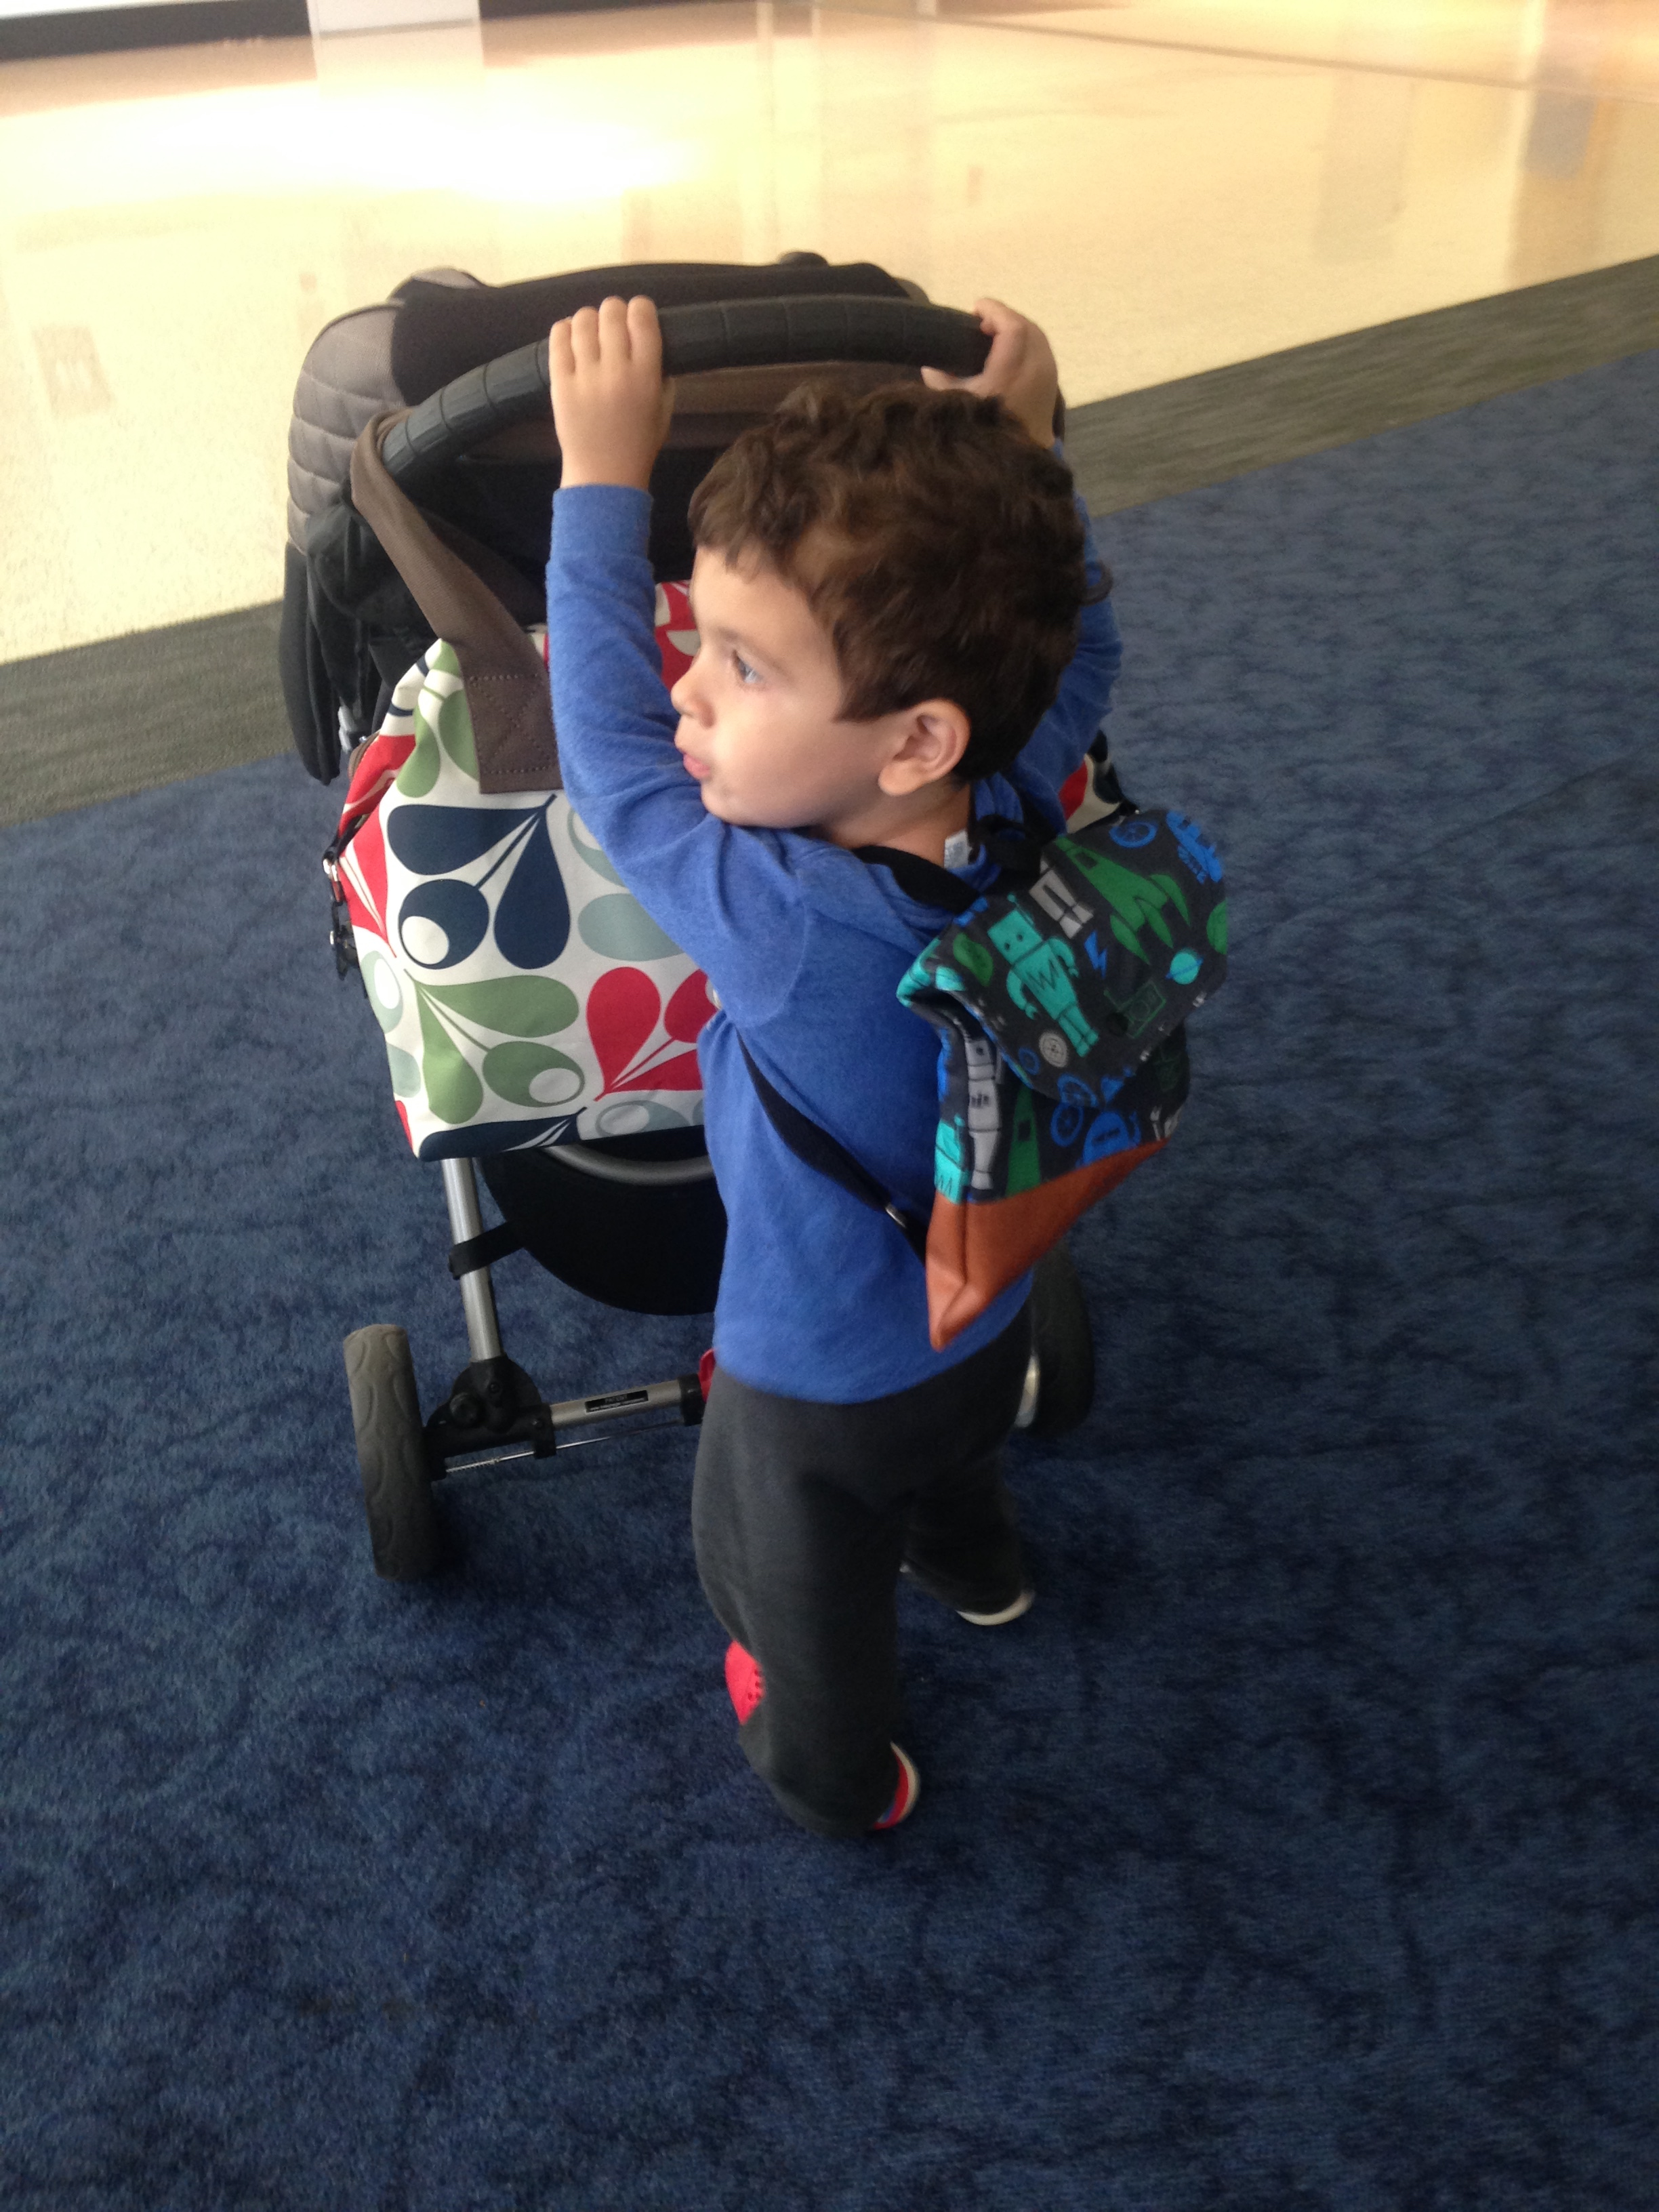 A good travel helper pushes the stroller.